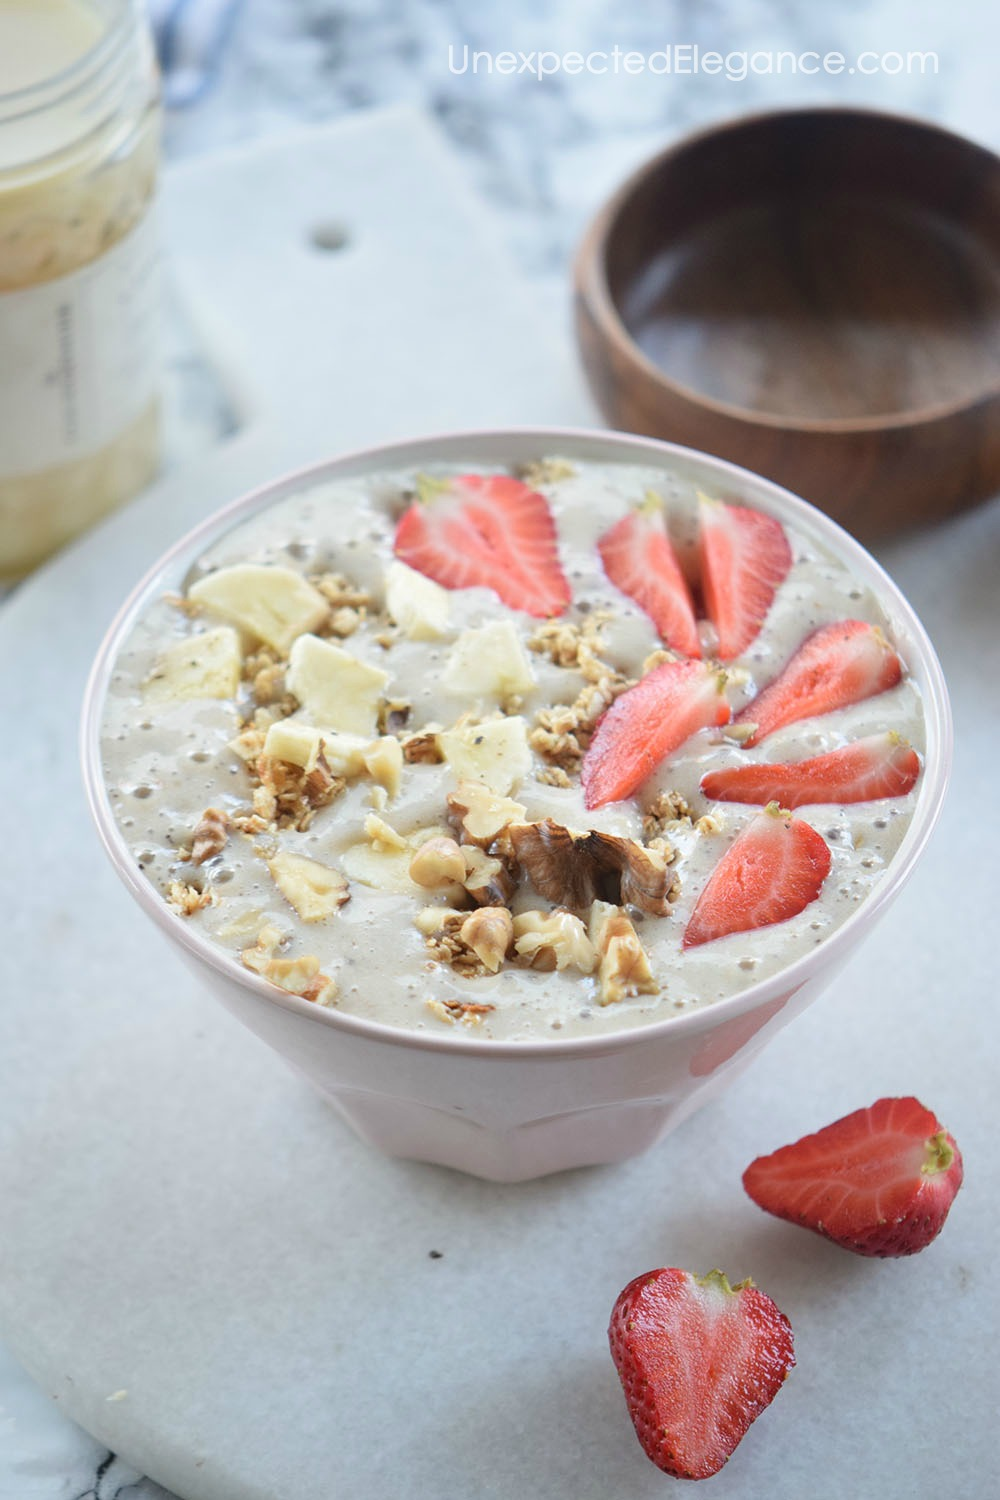 Do you love smoothies? Have you tried a smoothie bowl?? This Strawberry Banana Smoothie Bowl is delicious and will leave you feeling full.